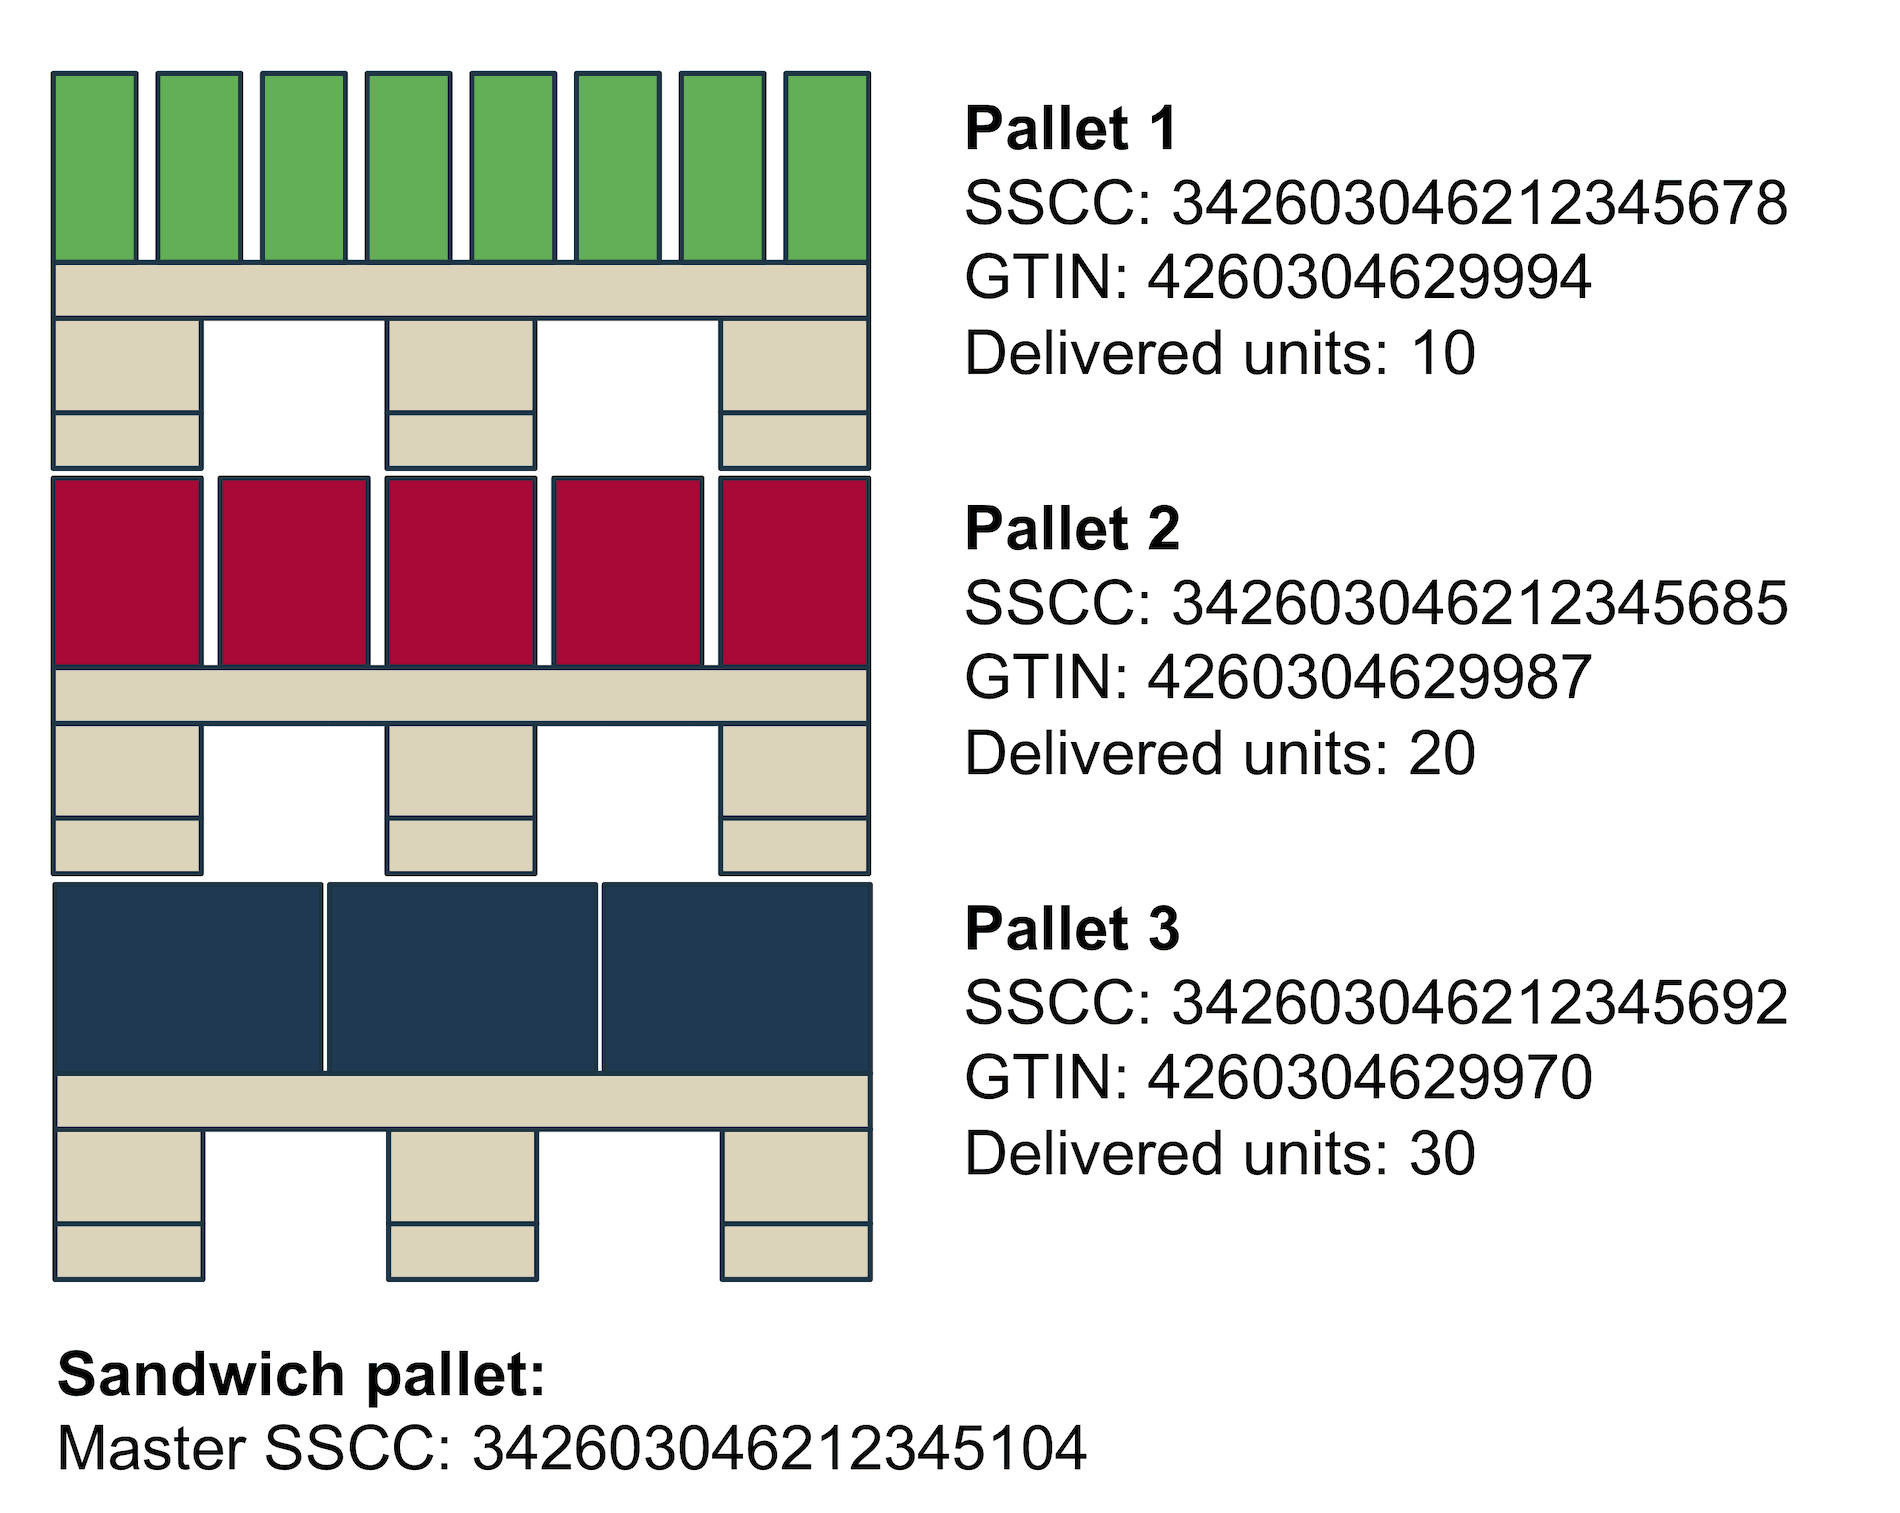 Example of a sandwich pallet